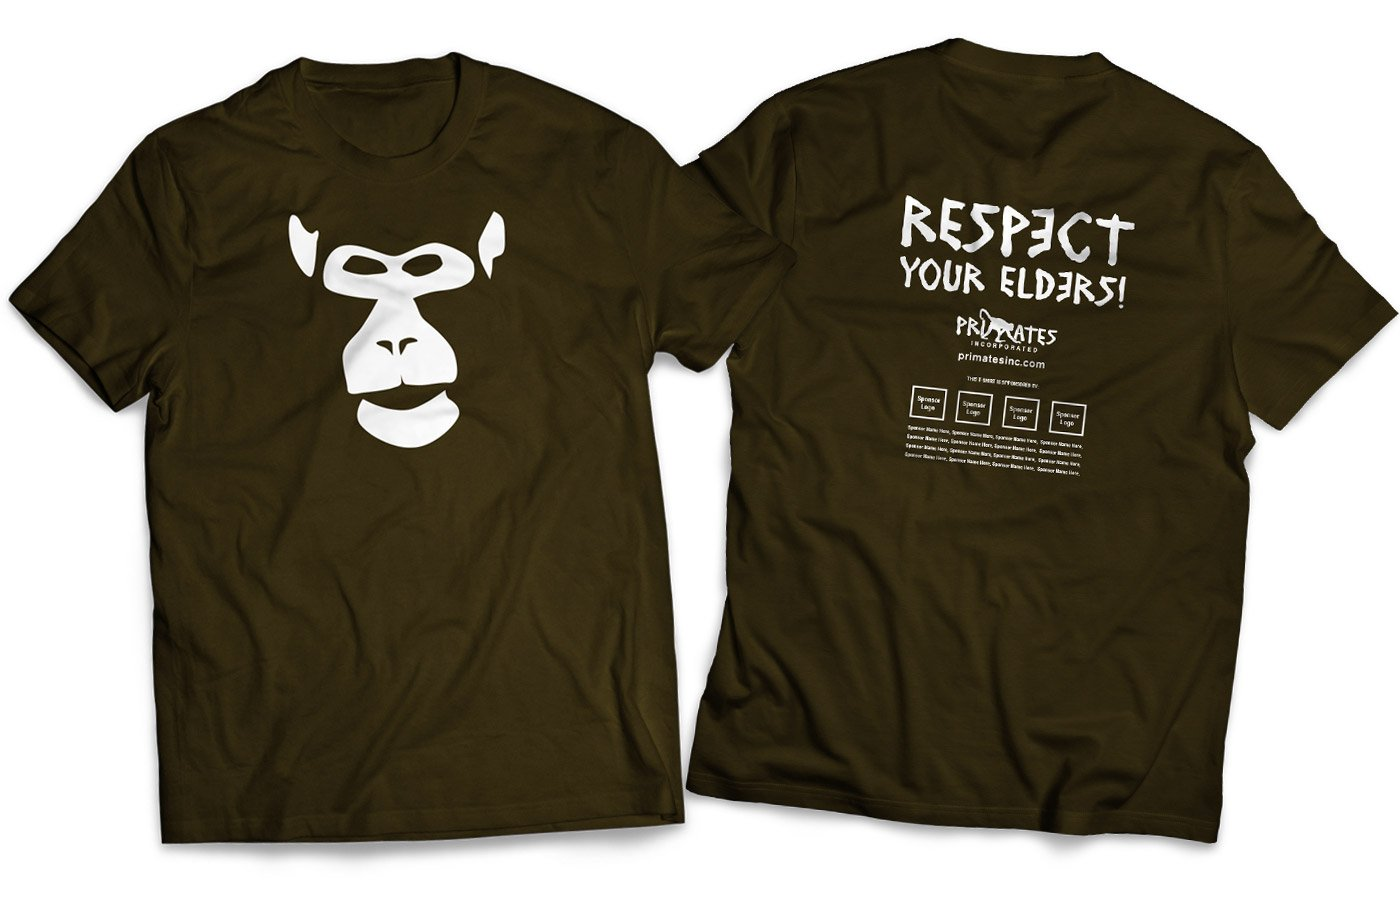 Primates Inc. Respect t-shirt design